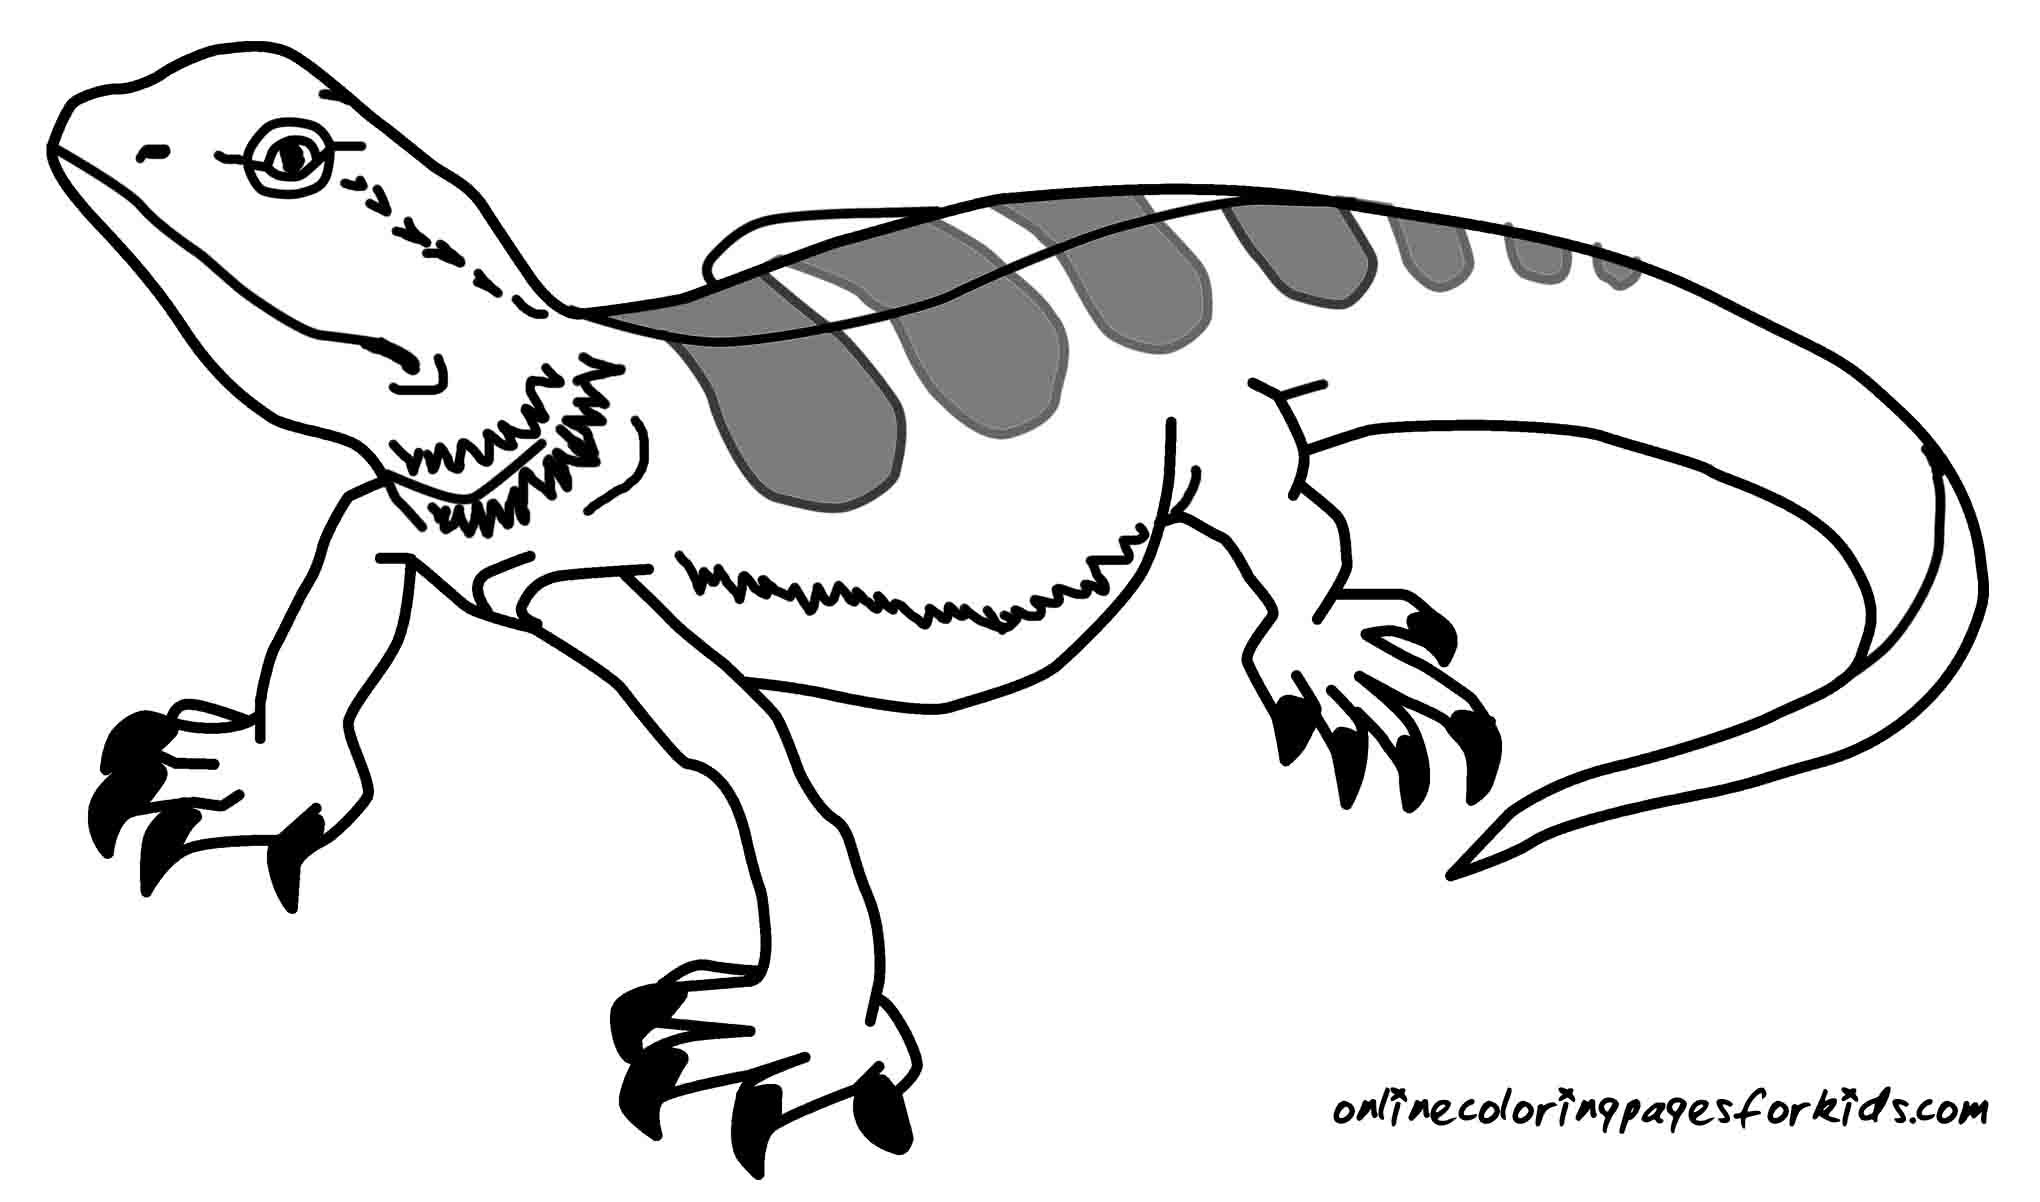 gecko lizard coloring pages monito gecko coloring page free printable coloring pages lizard coloring pages gecko